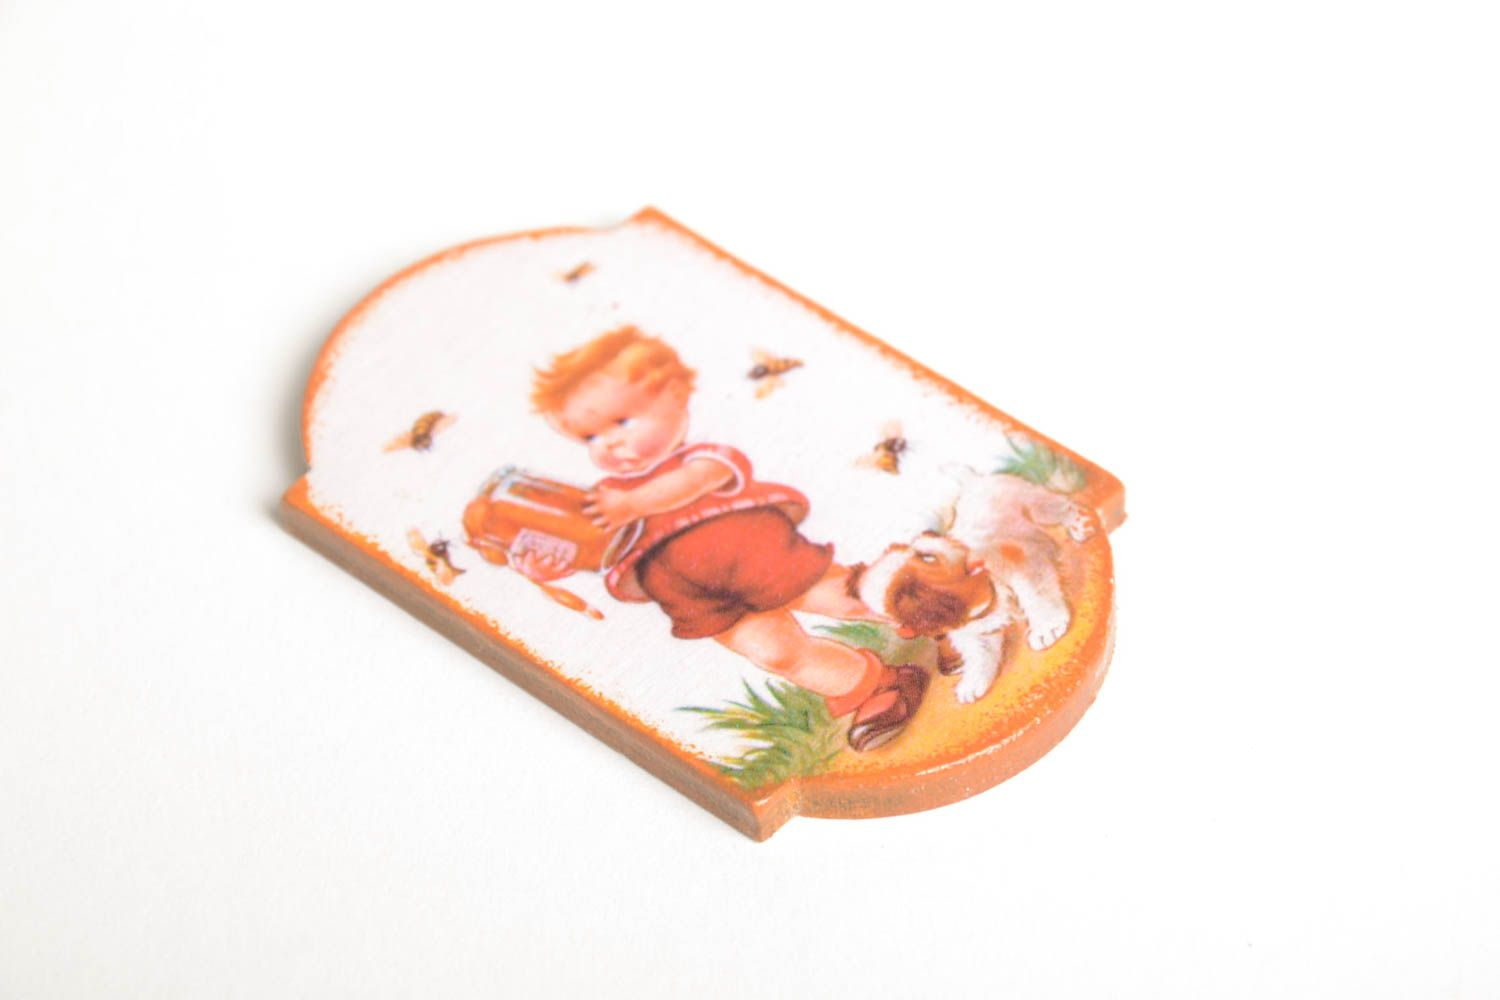 Unusual handmade magnet cool fridge magnets kitchen supplies decorative use only photo 5